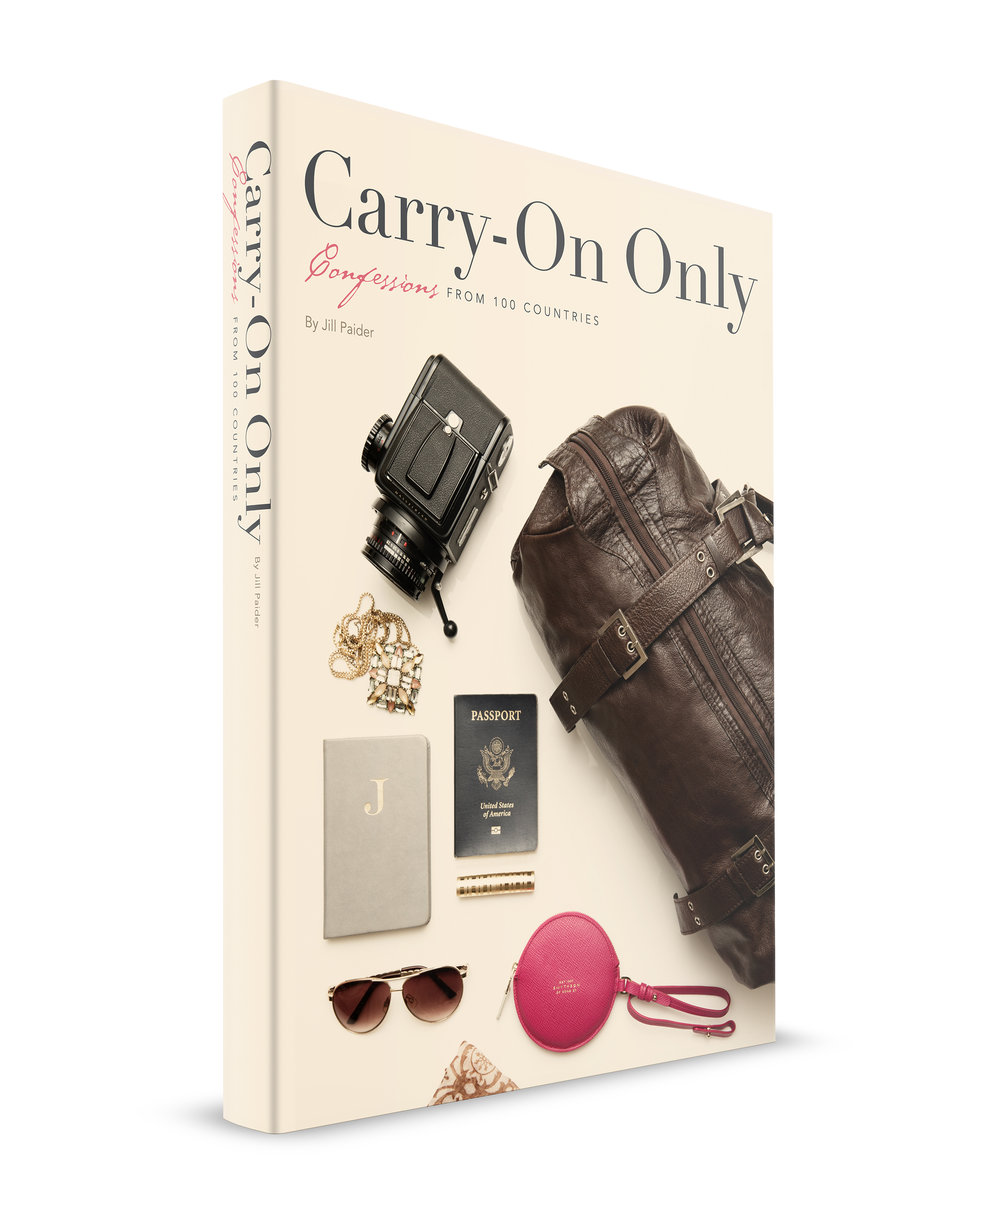 CARRY-ON ONLY